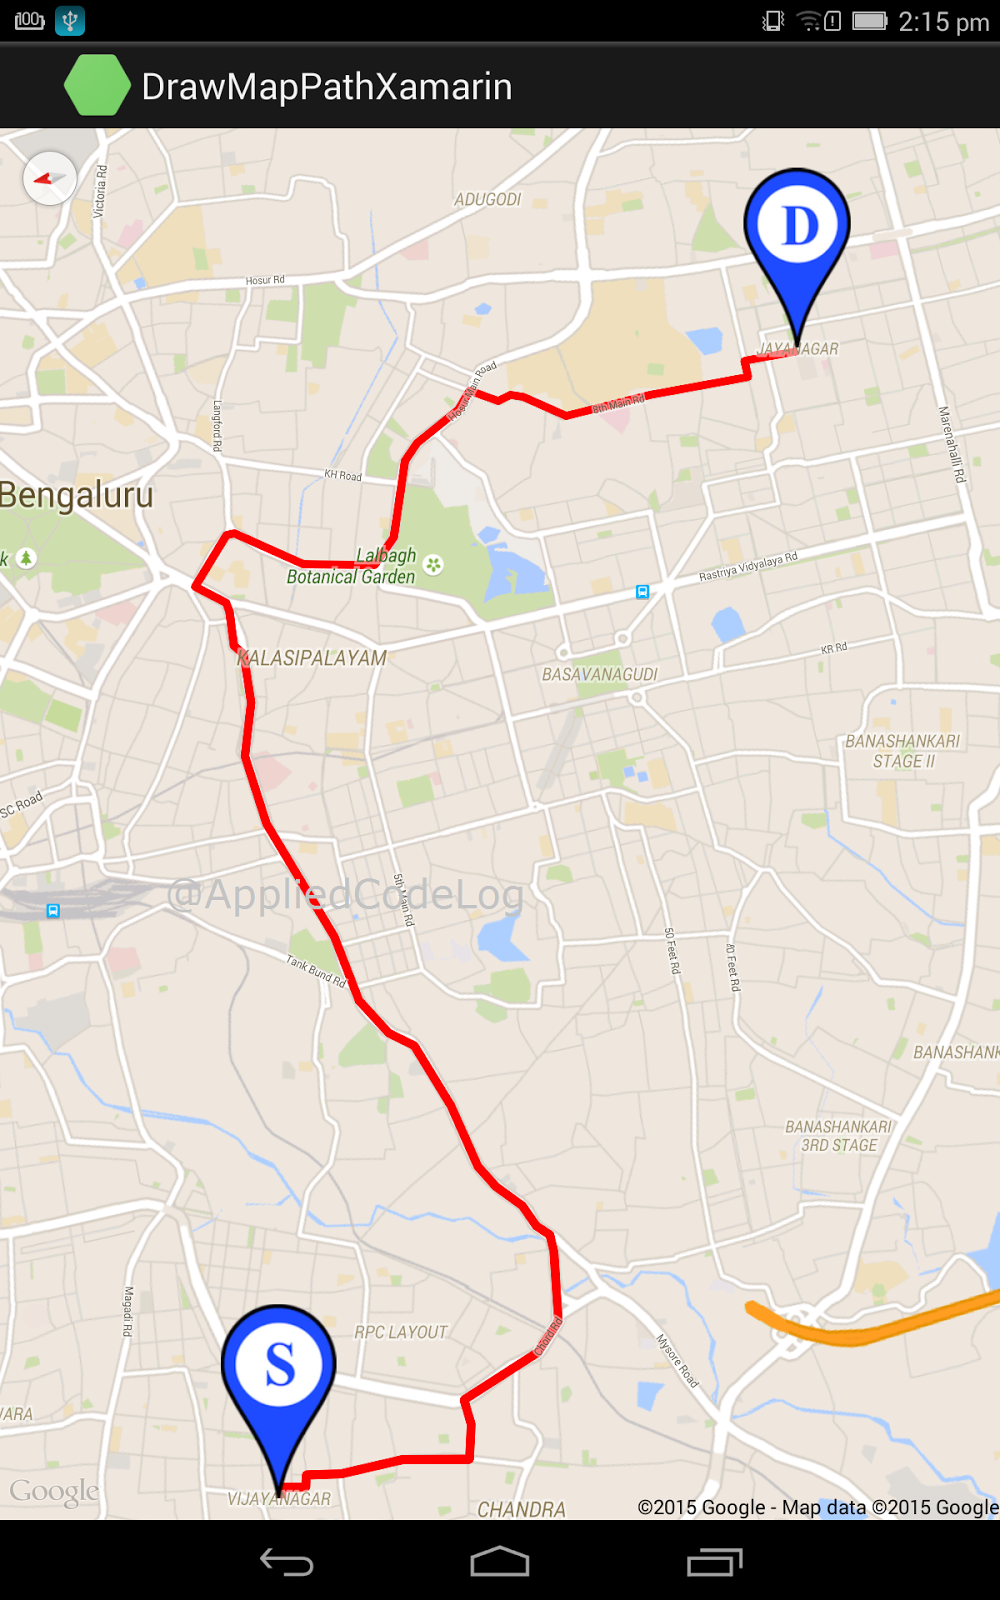 draw path between two locations in google maps v2 xamarin android